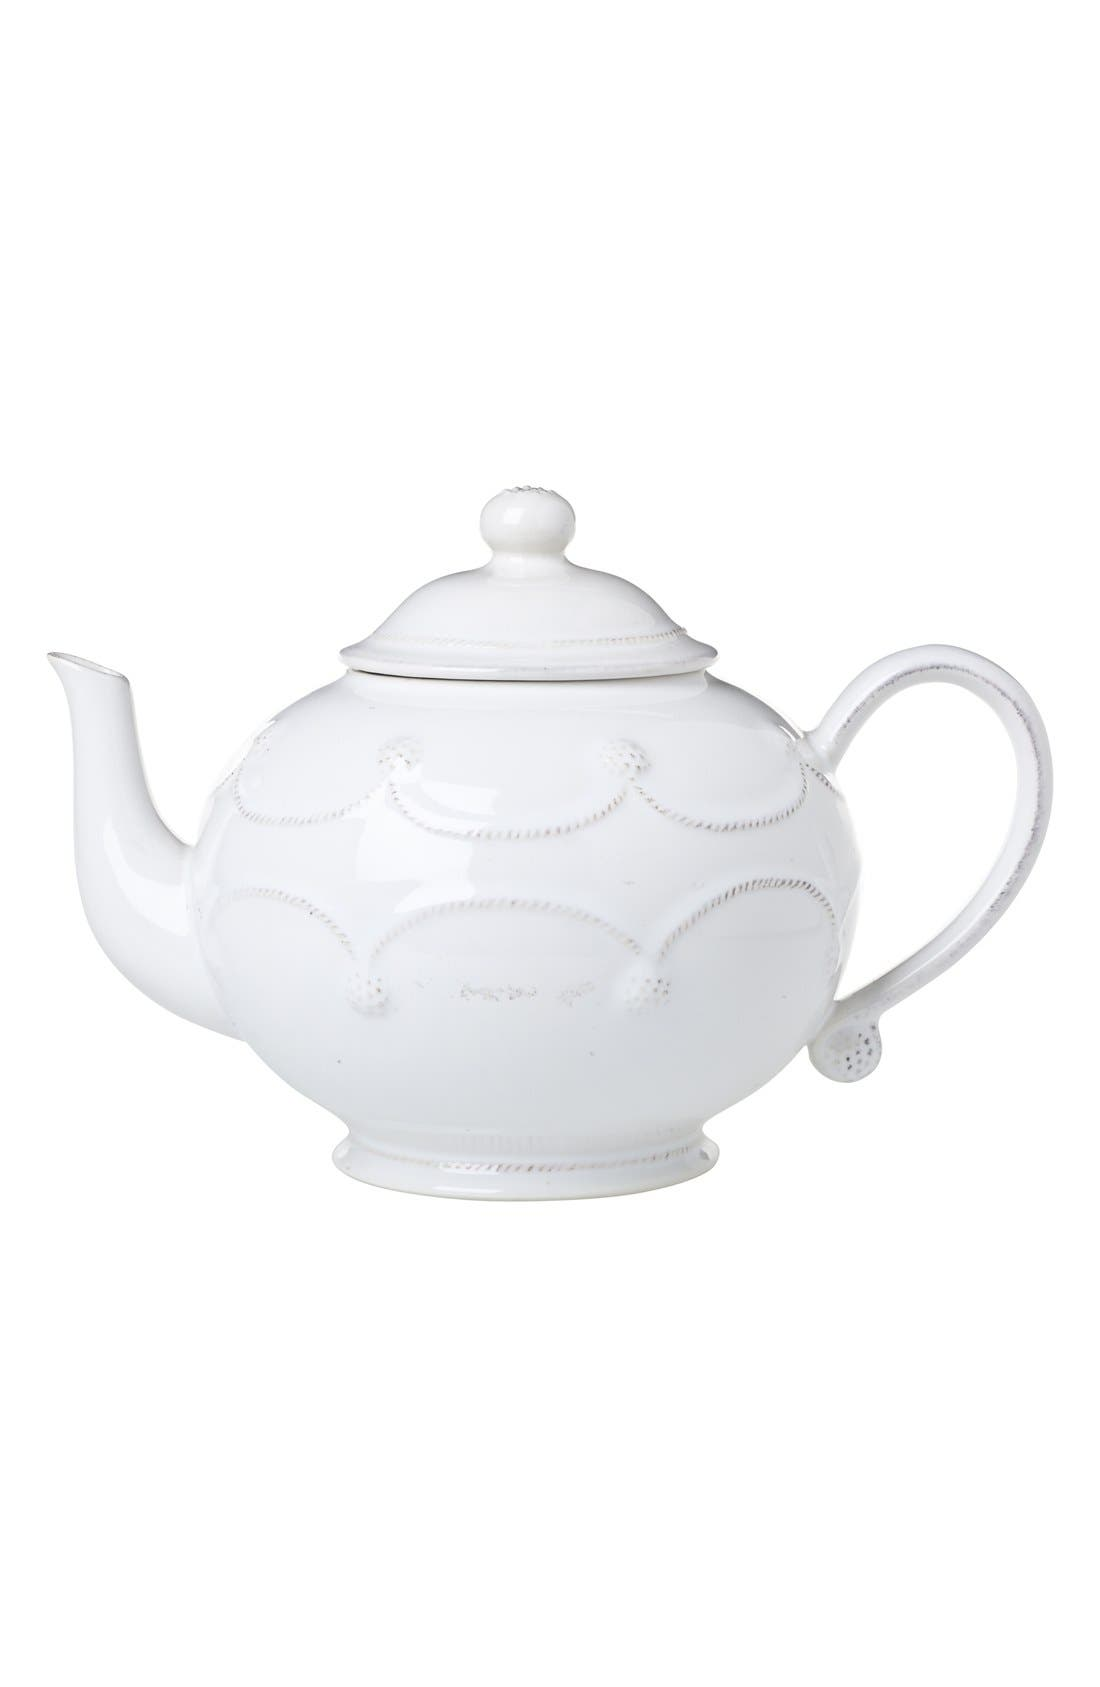 'Berry and Thread' Ceramic Teapot,                         Main,                         color, Whitewash